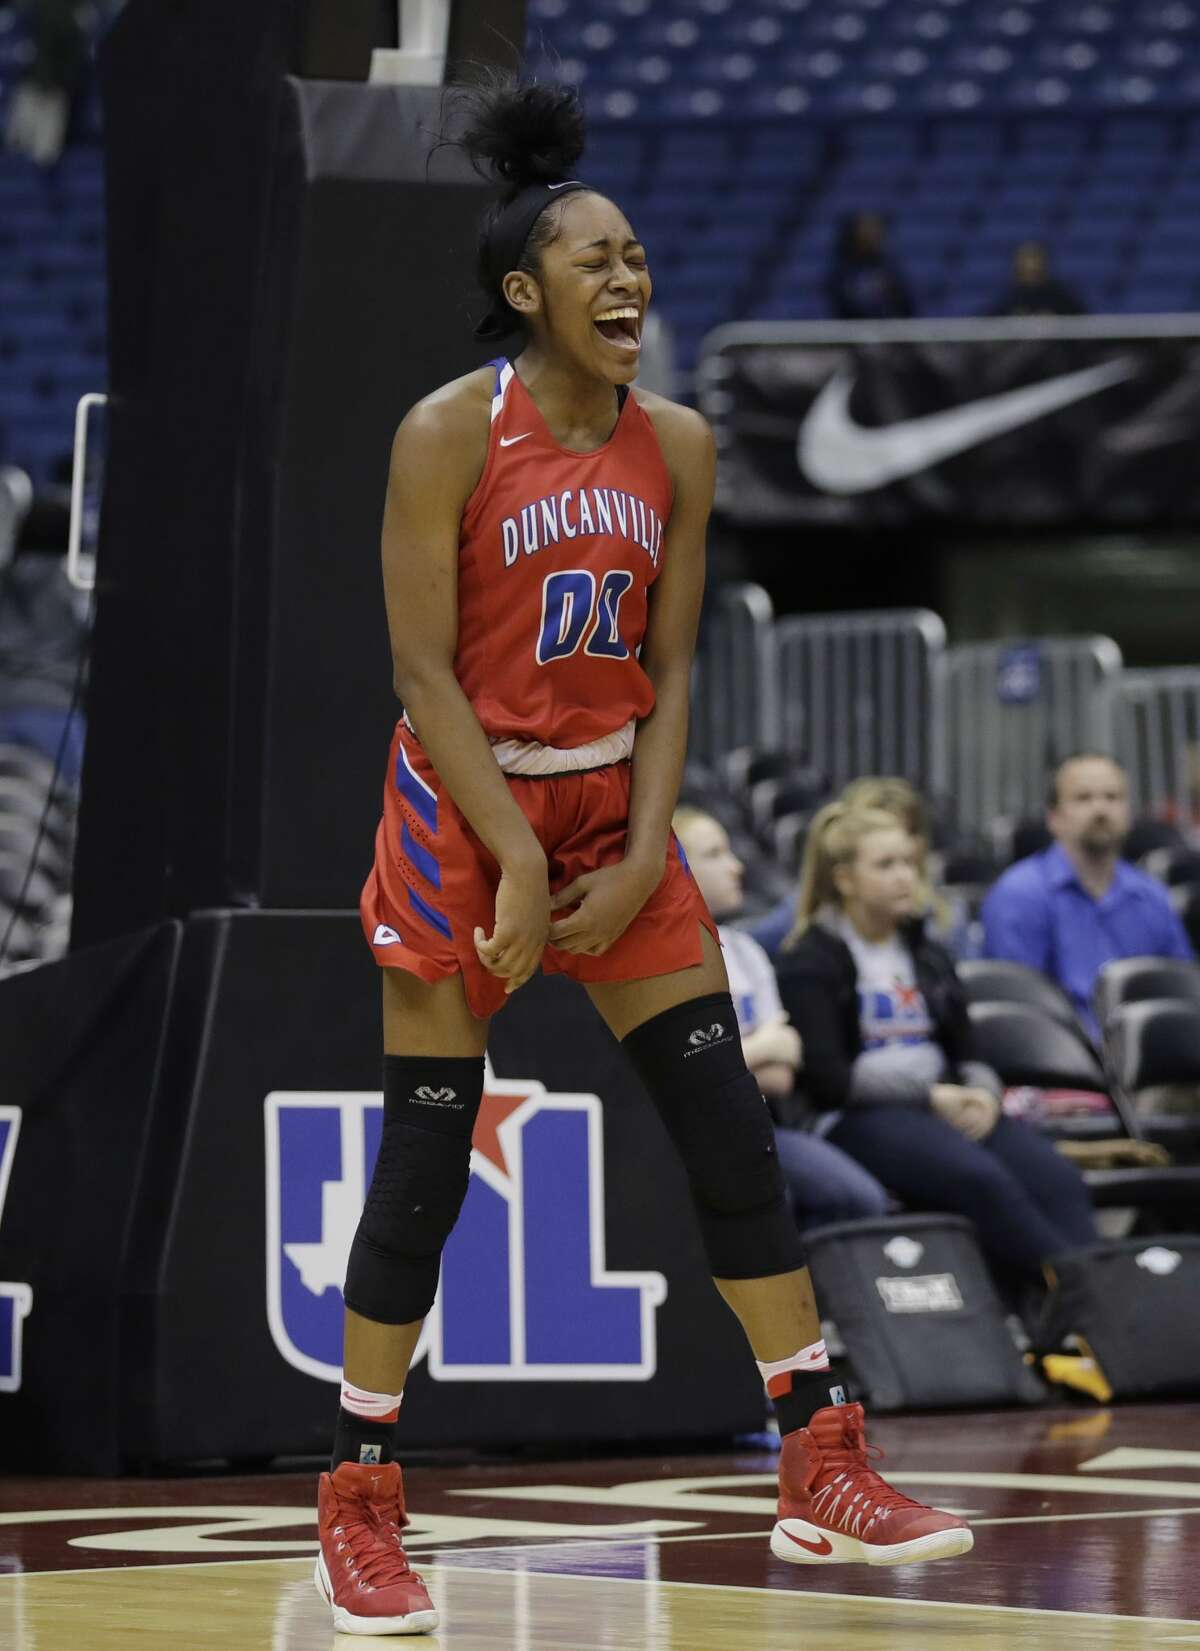 Duncanville's Zarielle Green celebrates the team's win over Houston Cypress Ranch in the UIL girls' Class 6A state basketball final, Saturday, March 4, 2017, in San Antonio. Duncanville won 76-65. (AP Photo/Eric Gay)